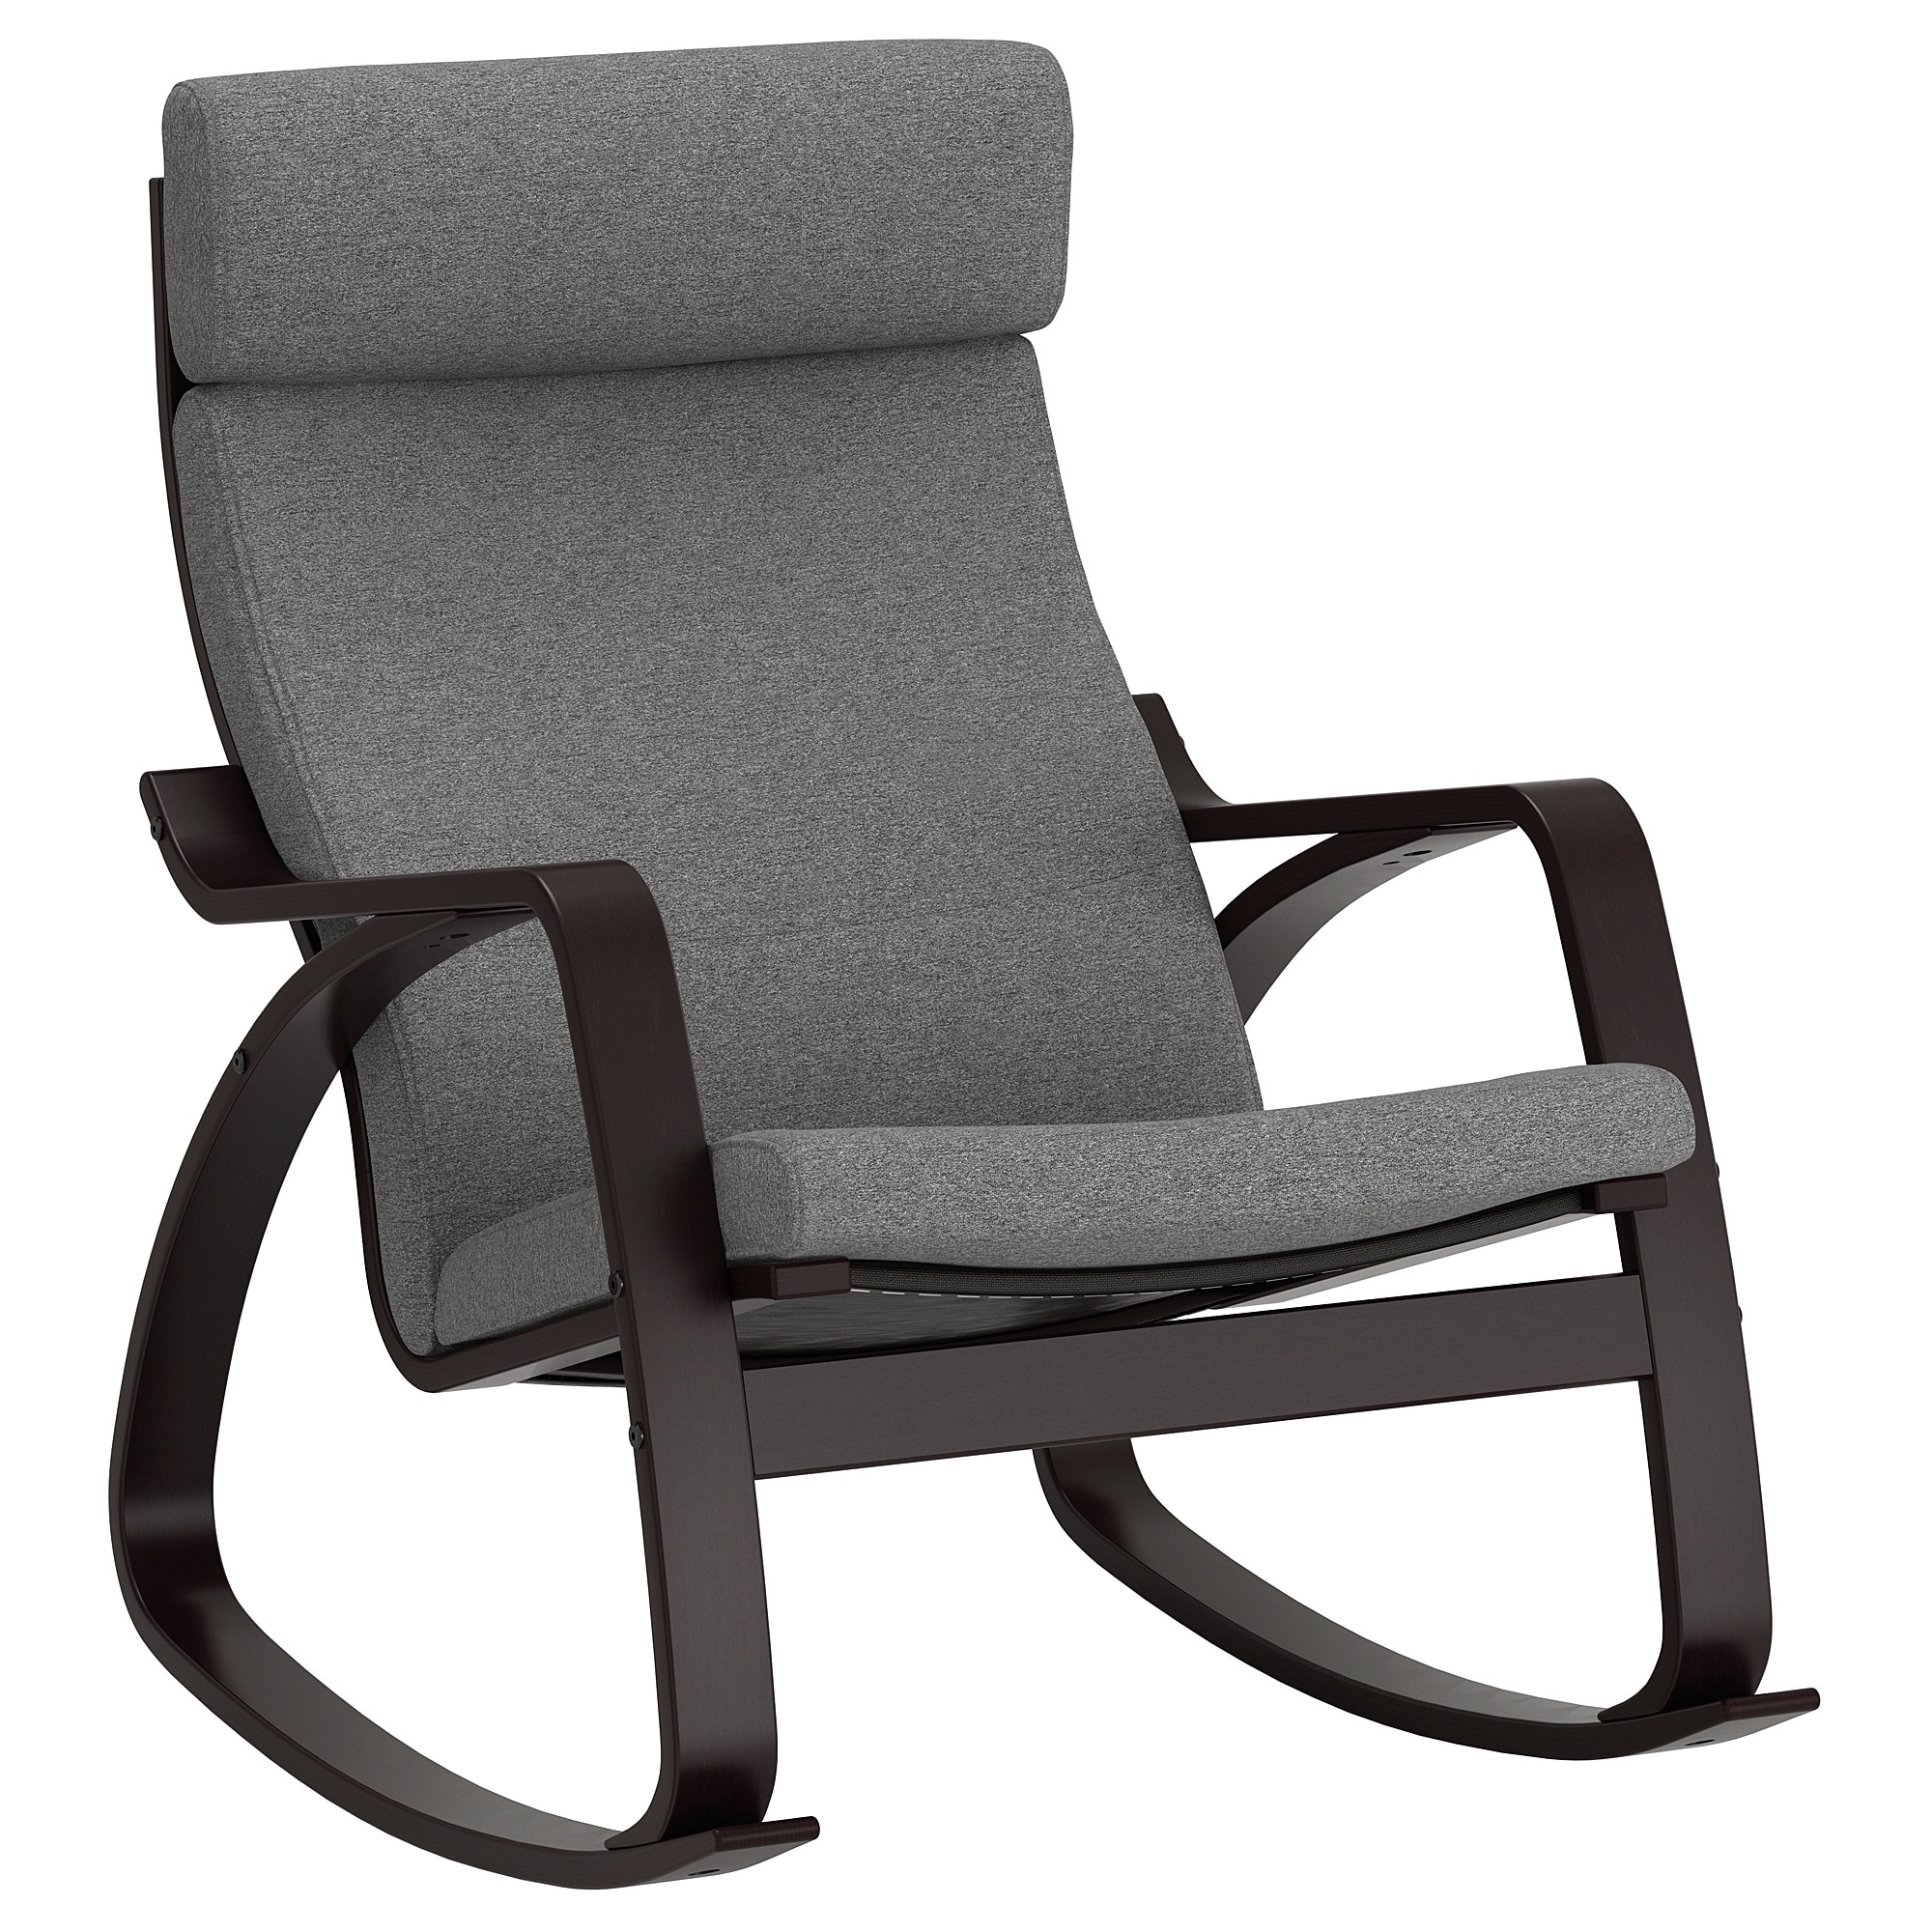 Most Recent Ikea Rocking Chairs Regarding Poäng Rocking Chair Black Brown/lysed Grey – Ikea (View 8 of 15)